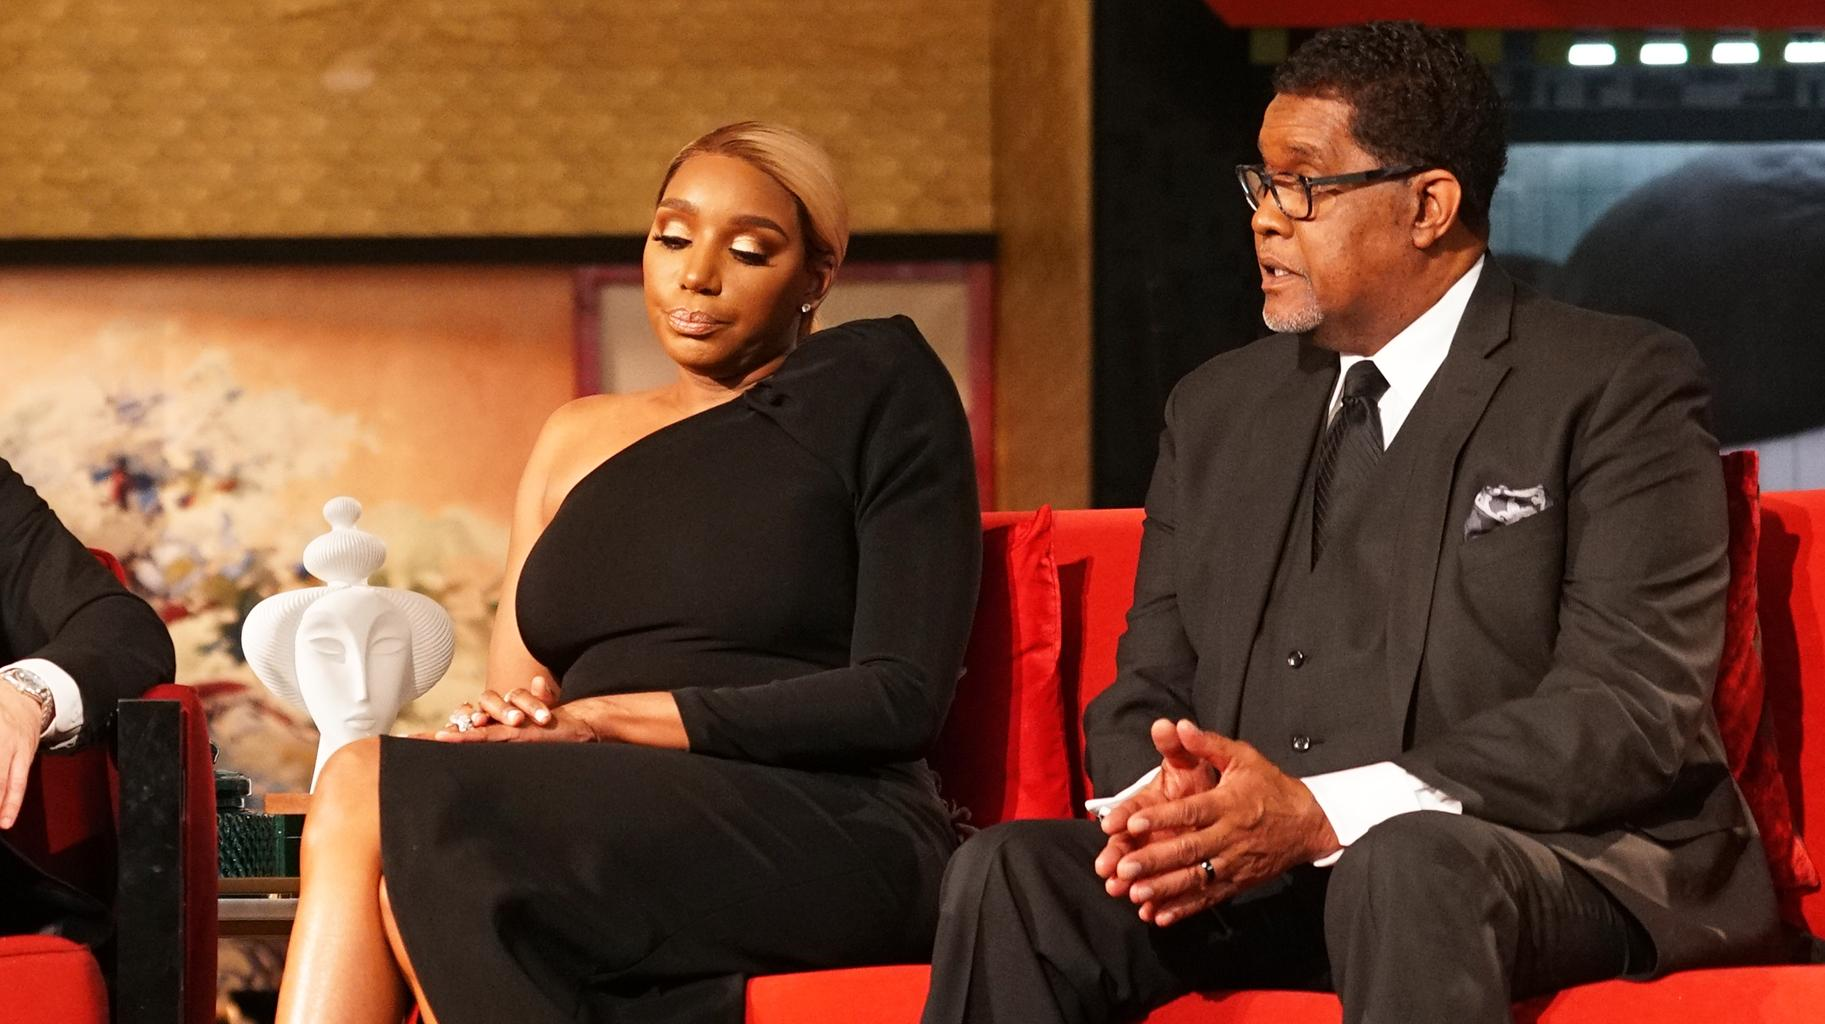 NeNe Leakes Is Accused Of Having A 'Pitbull Mentality' - The Hate Is Strong